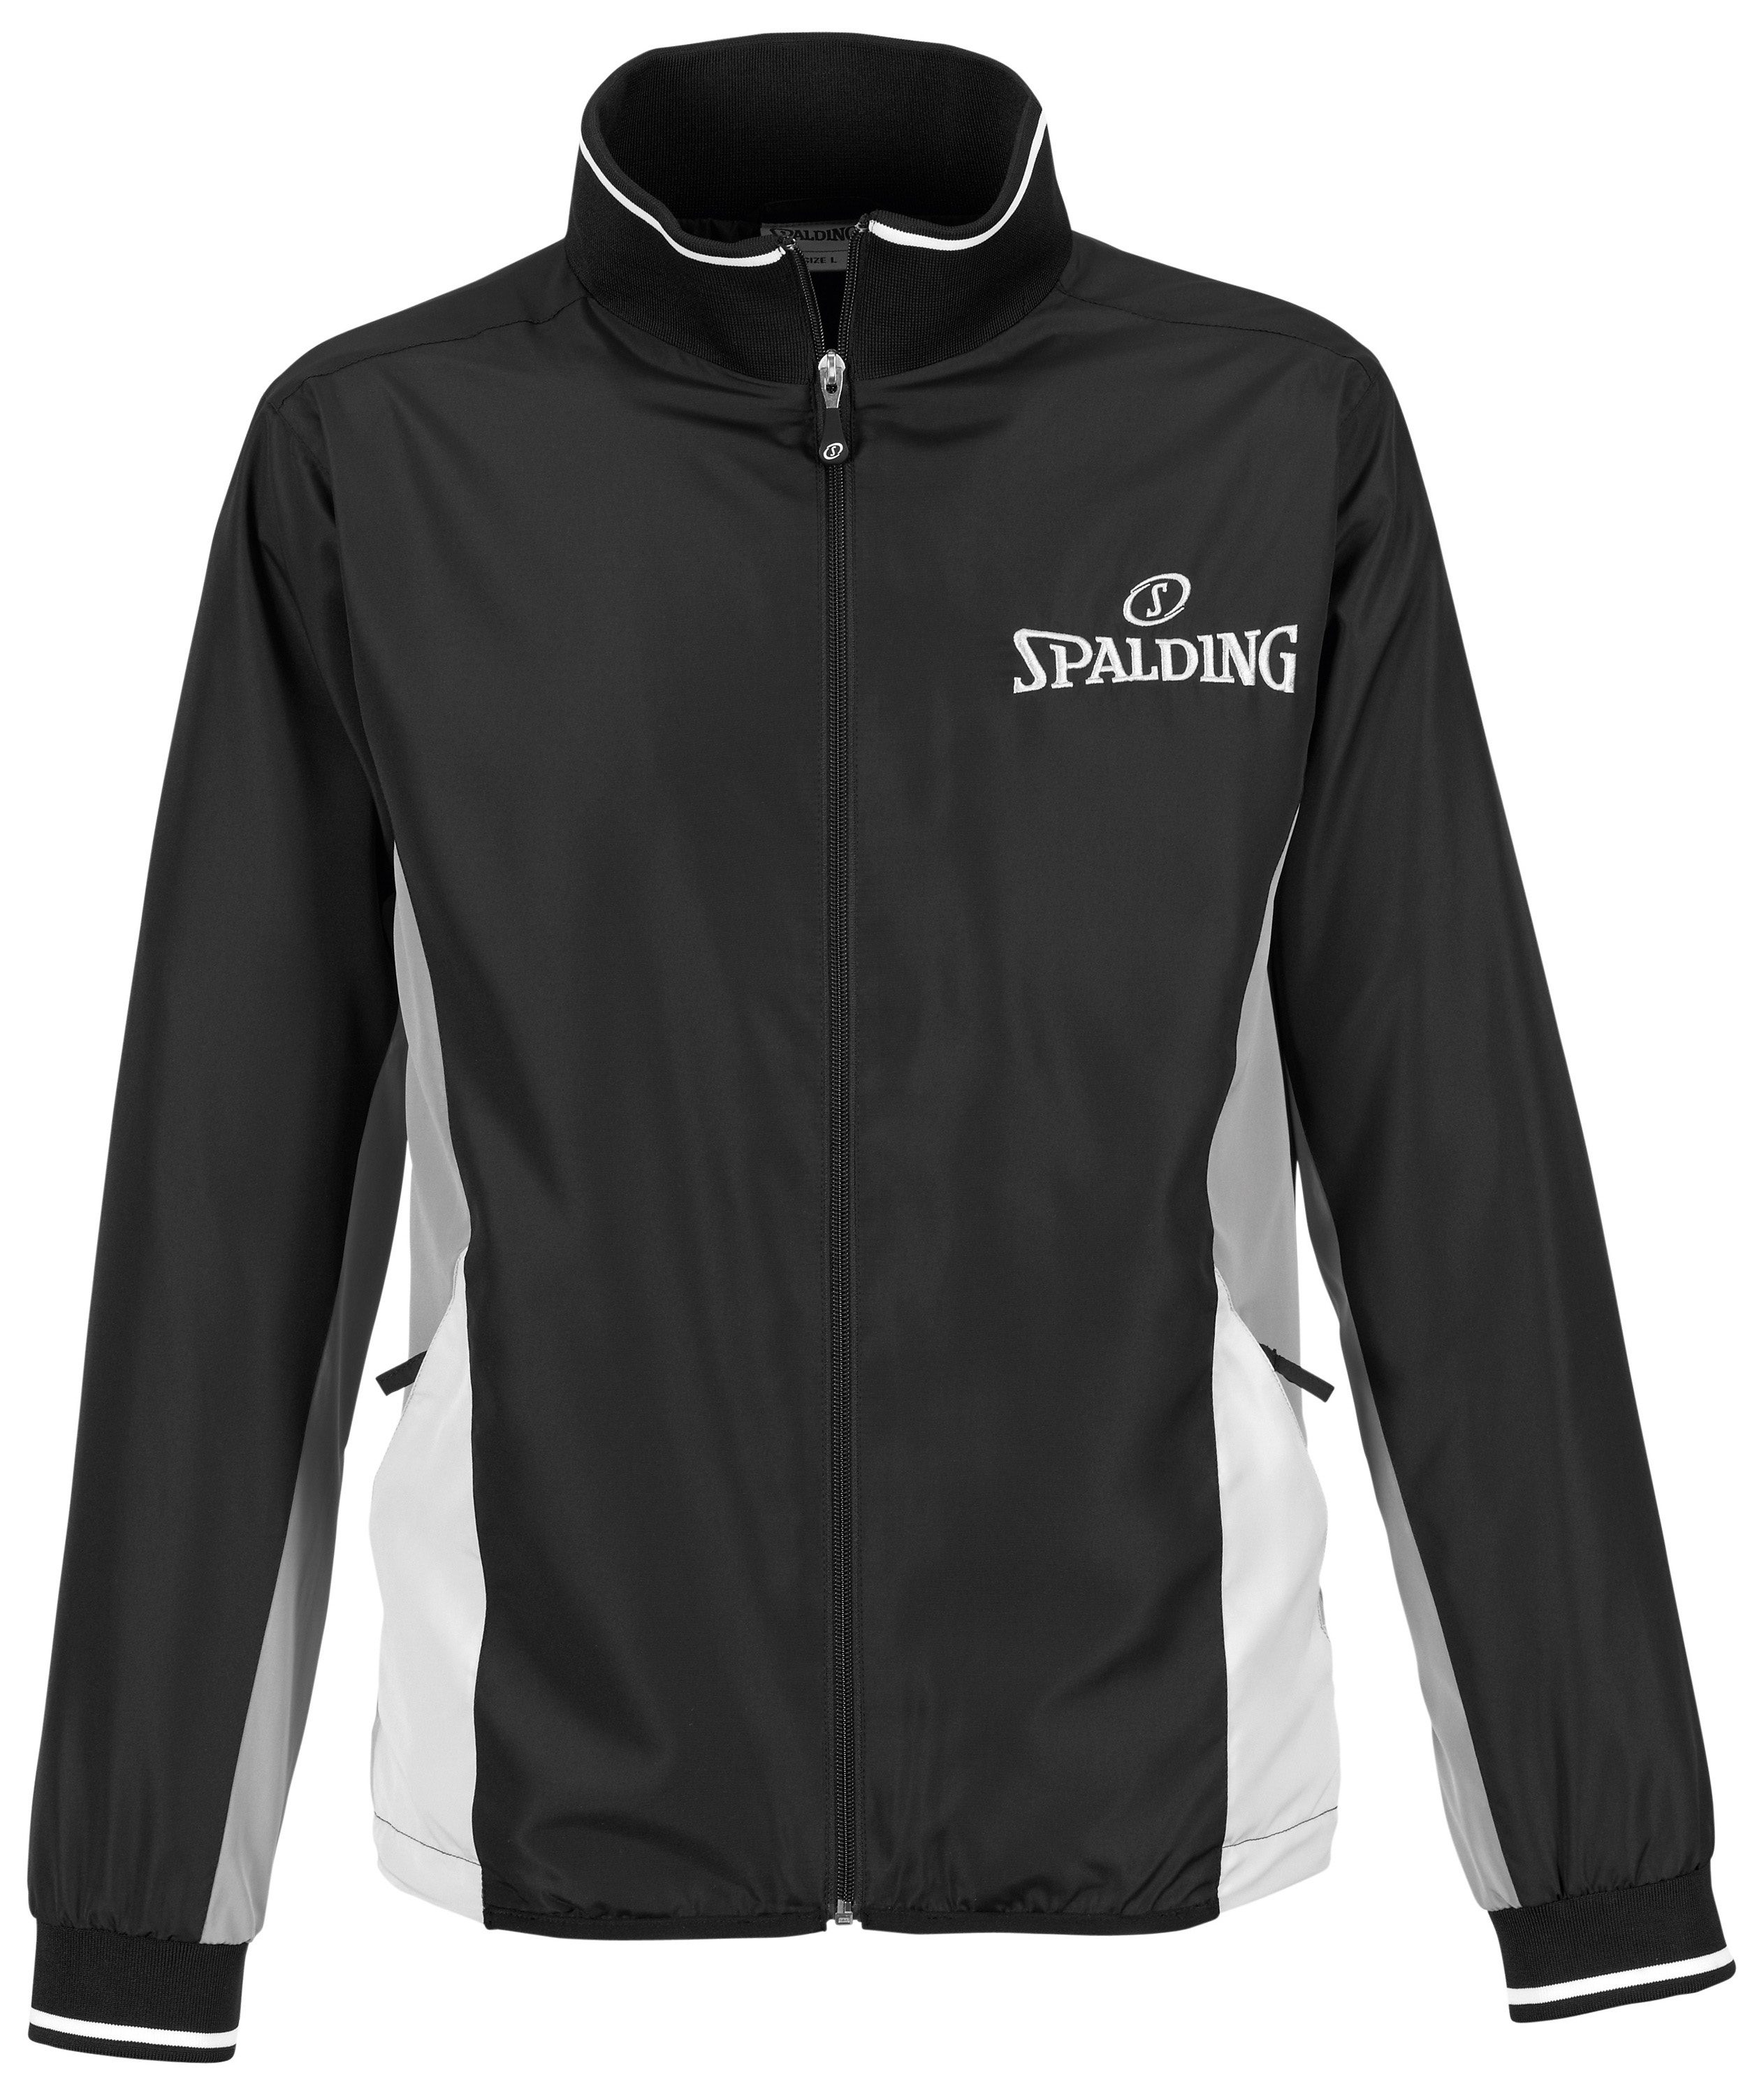 SPALDING Jacket Kinder